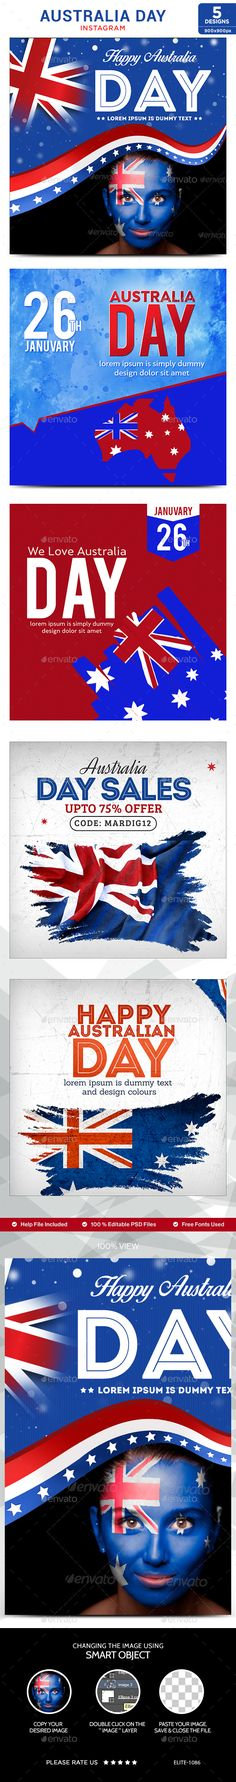 Australia Day instgram Templates  5 Designs — Photoshop PSD #gif banner #banner set • Available here → https://graphicriver.net/item/australia-day-instgram-templates-5-designs/14539243?ref=pxcr